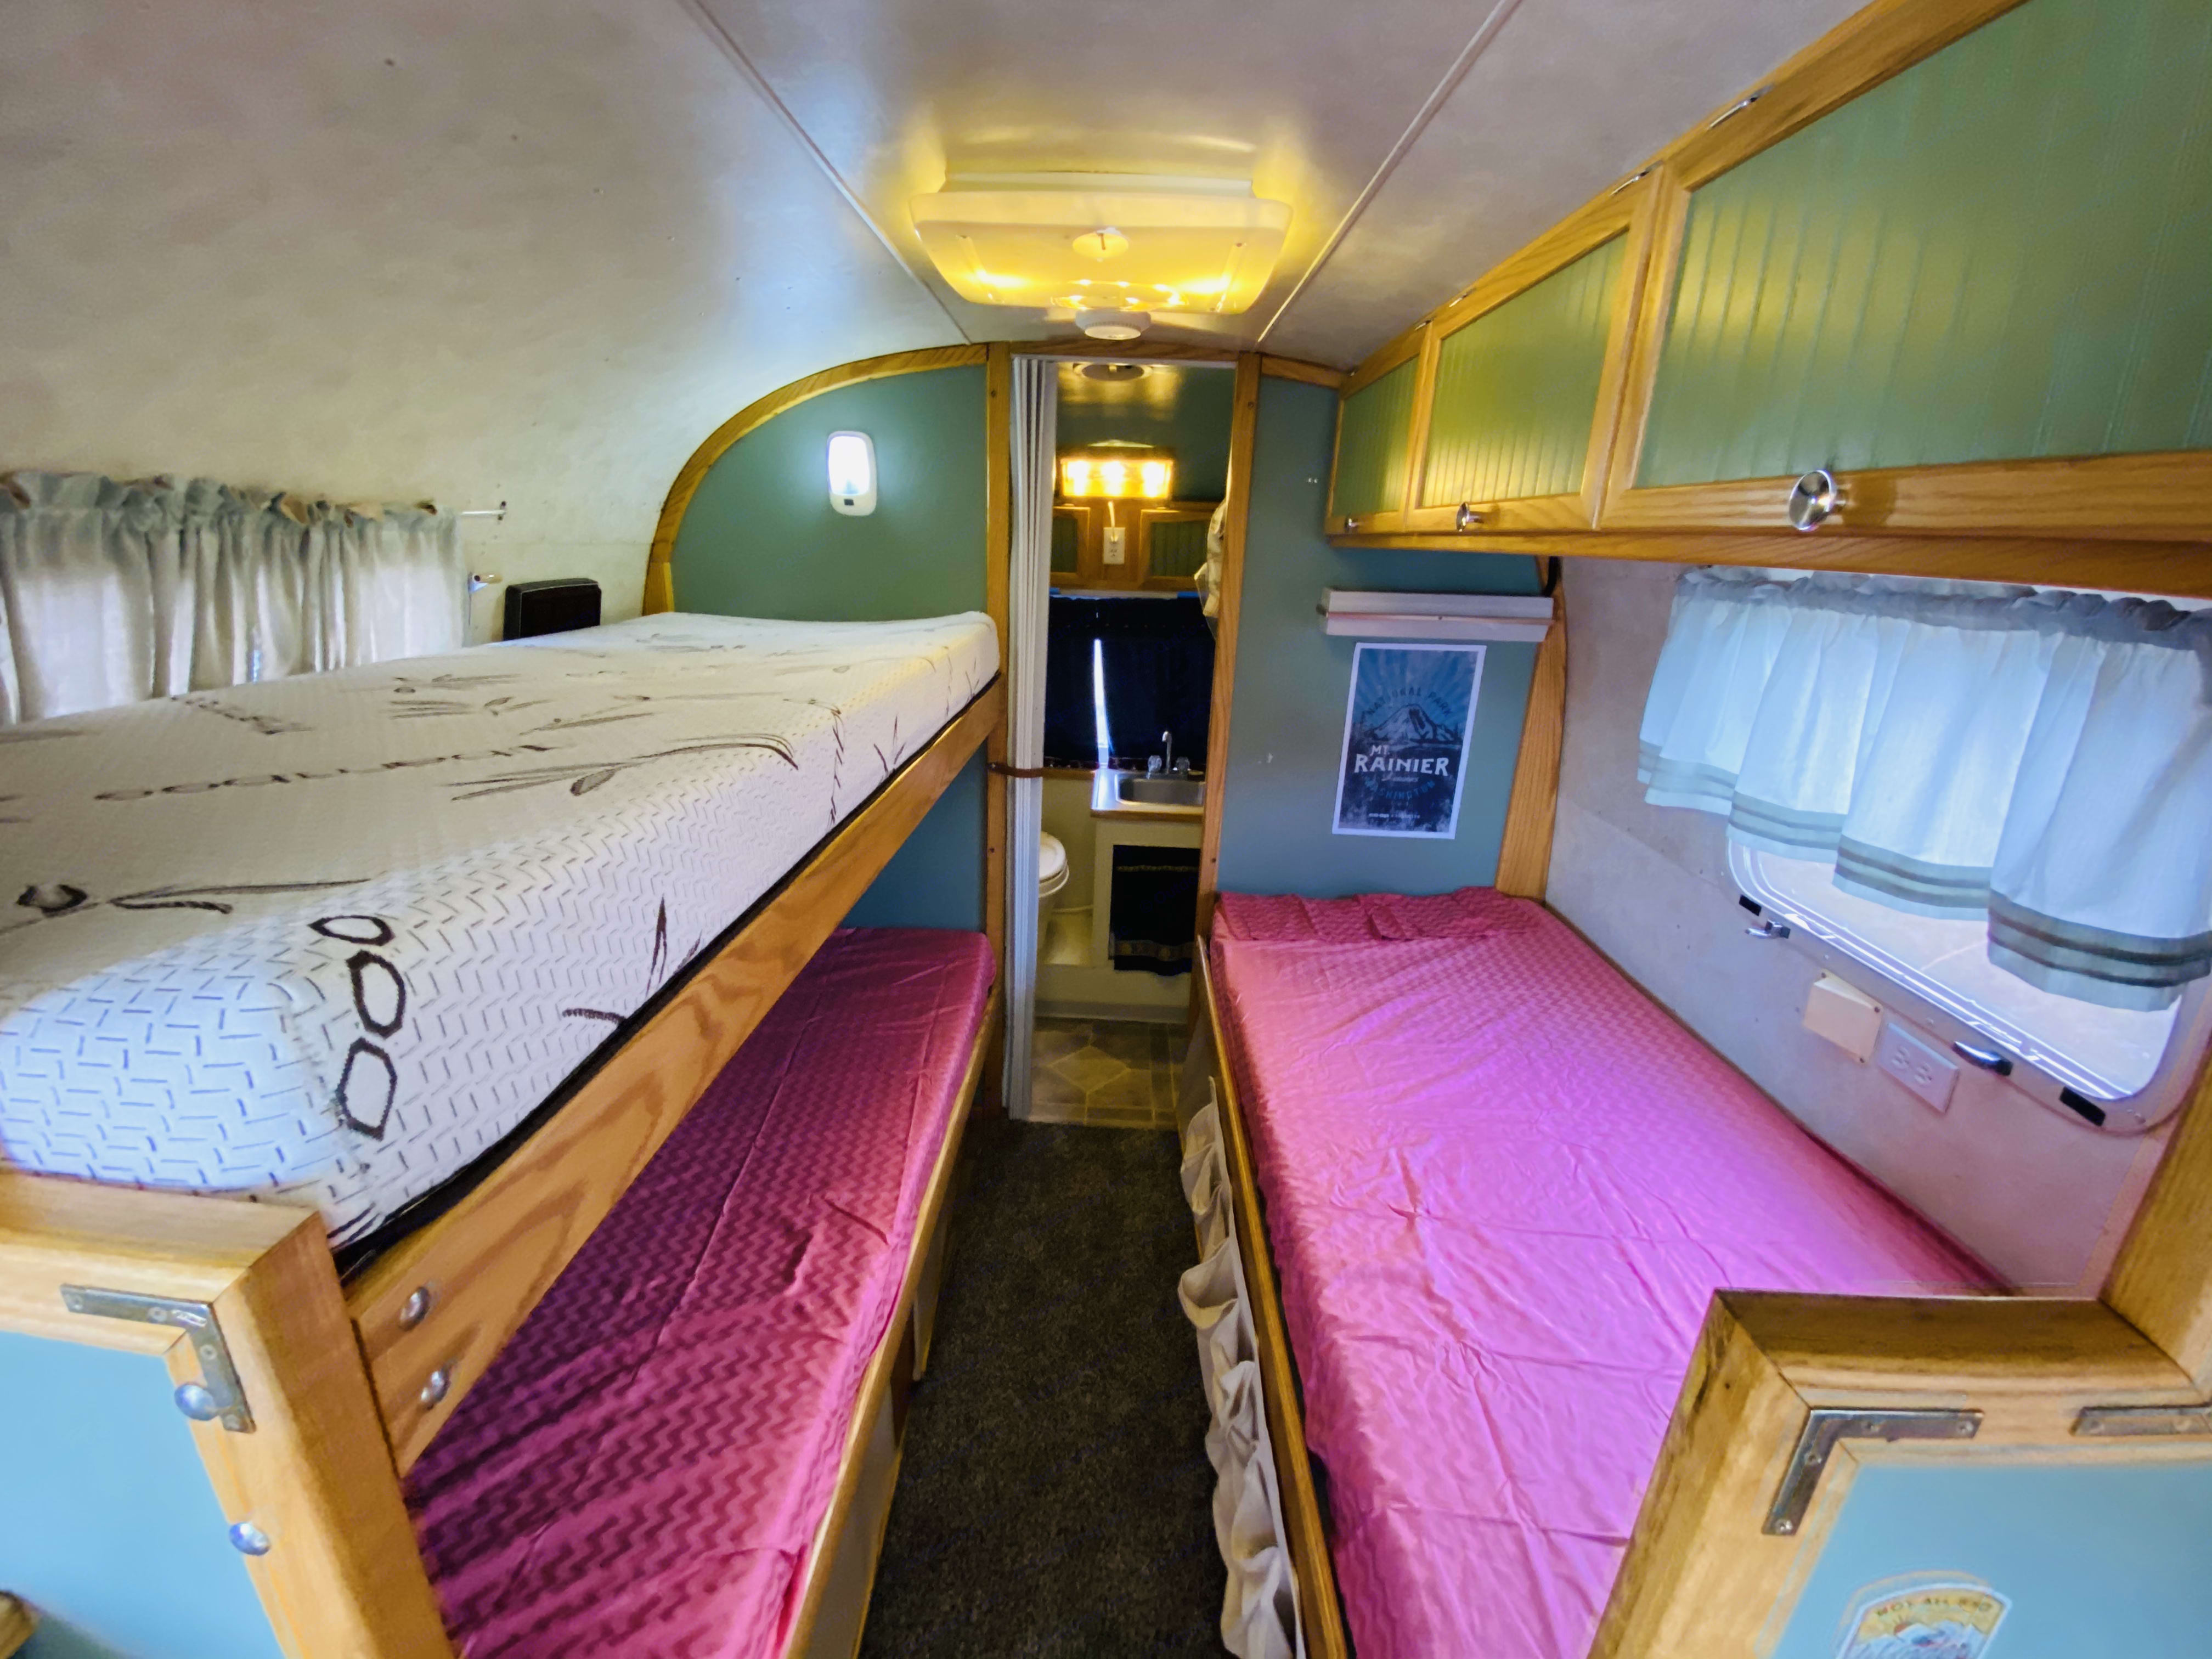 3 twin beds 75x 32. Airstream Trade Winds 1979